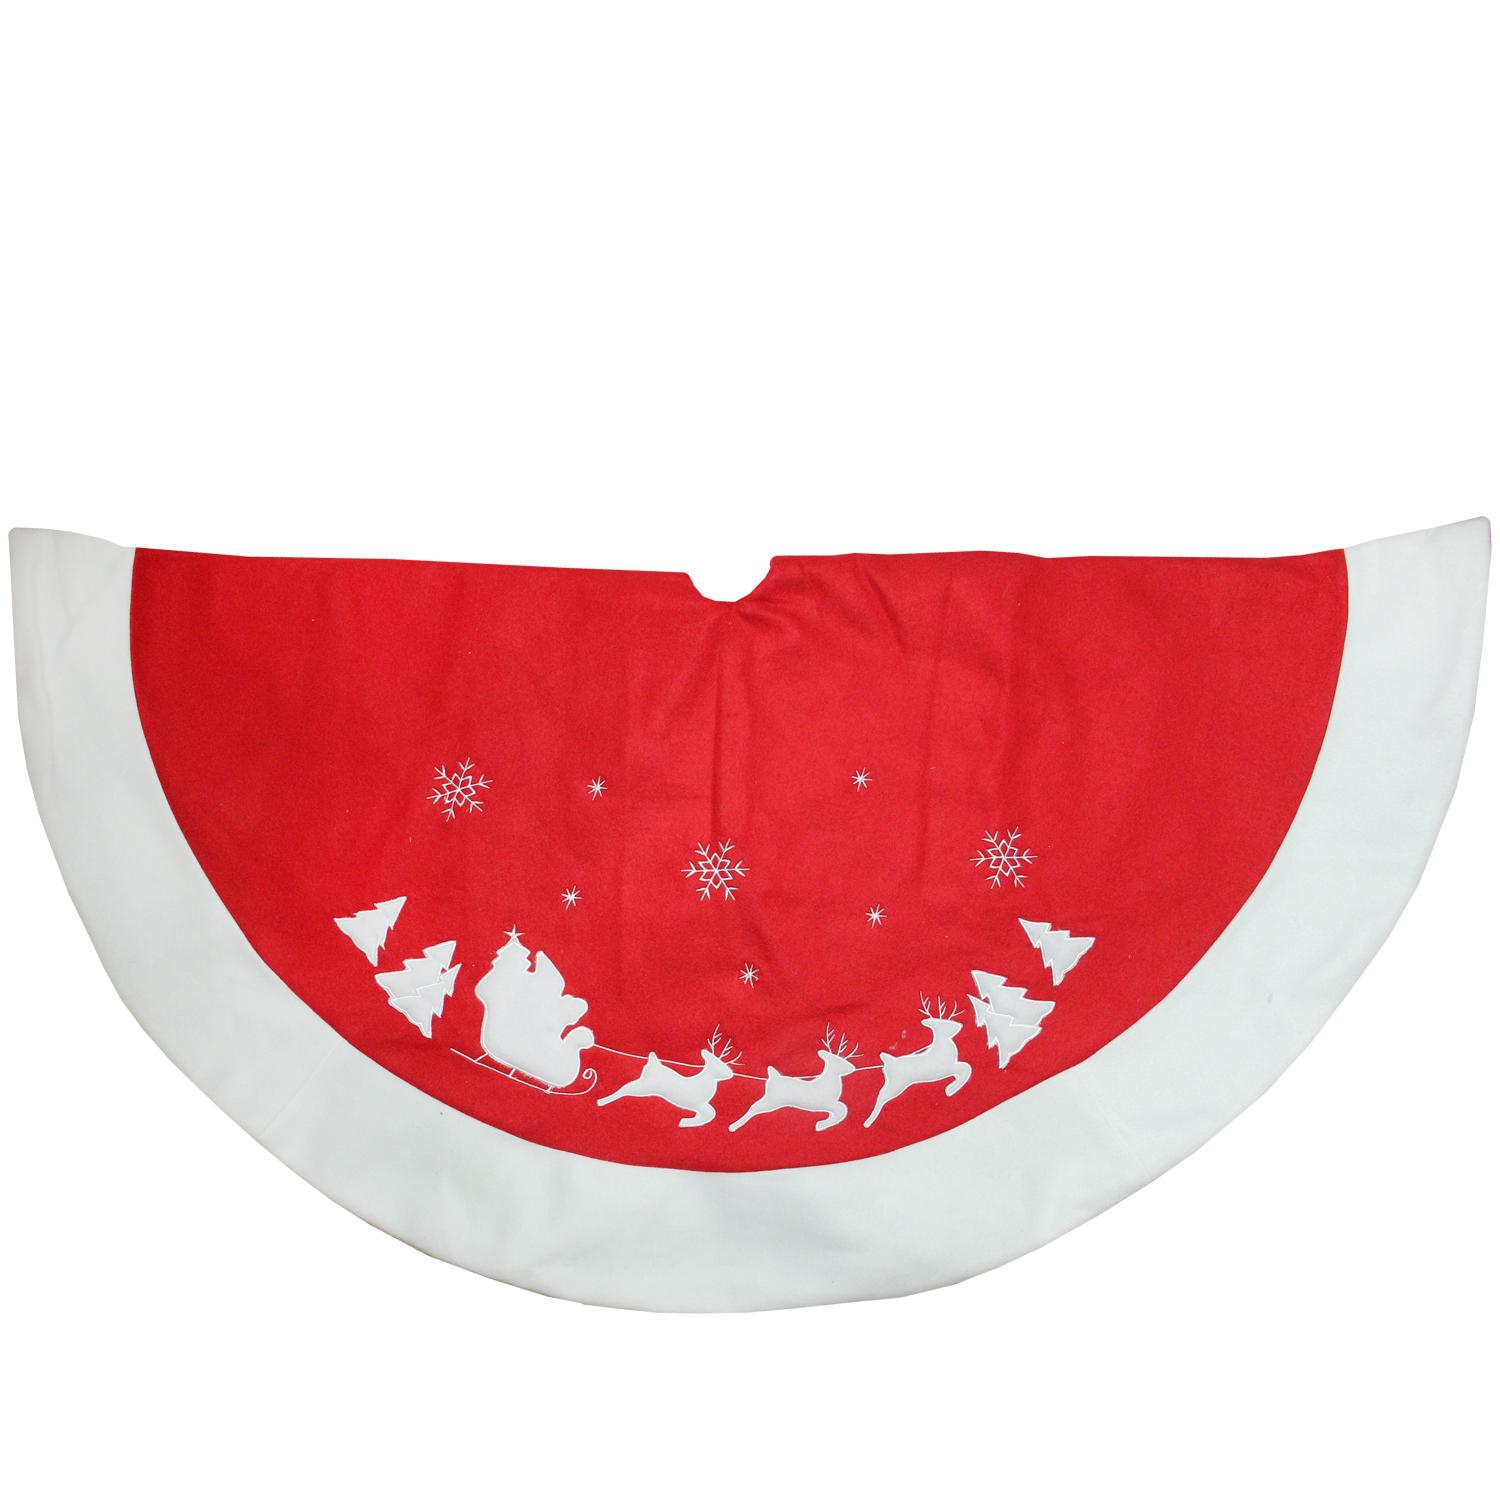 "48"" Red and White Santa Claus and Reindeer Embroidered Christmas Tree Skirt"